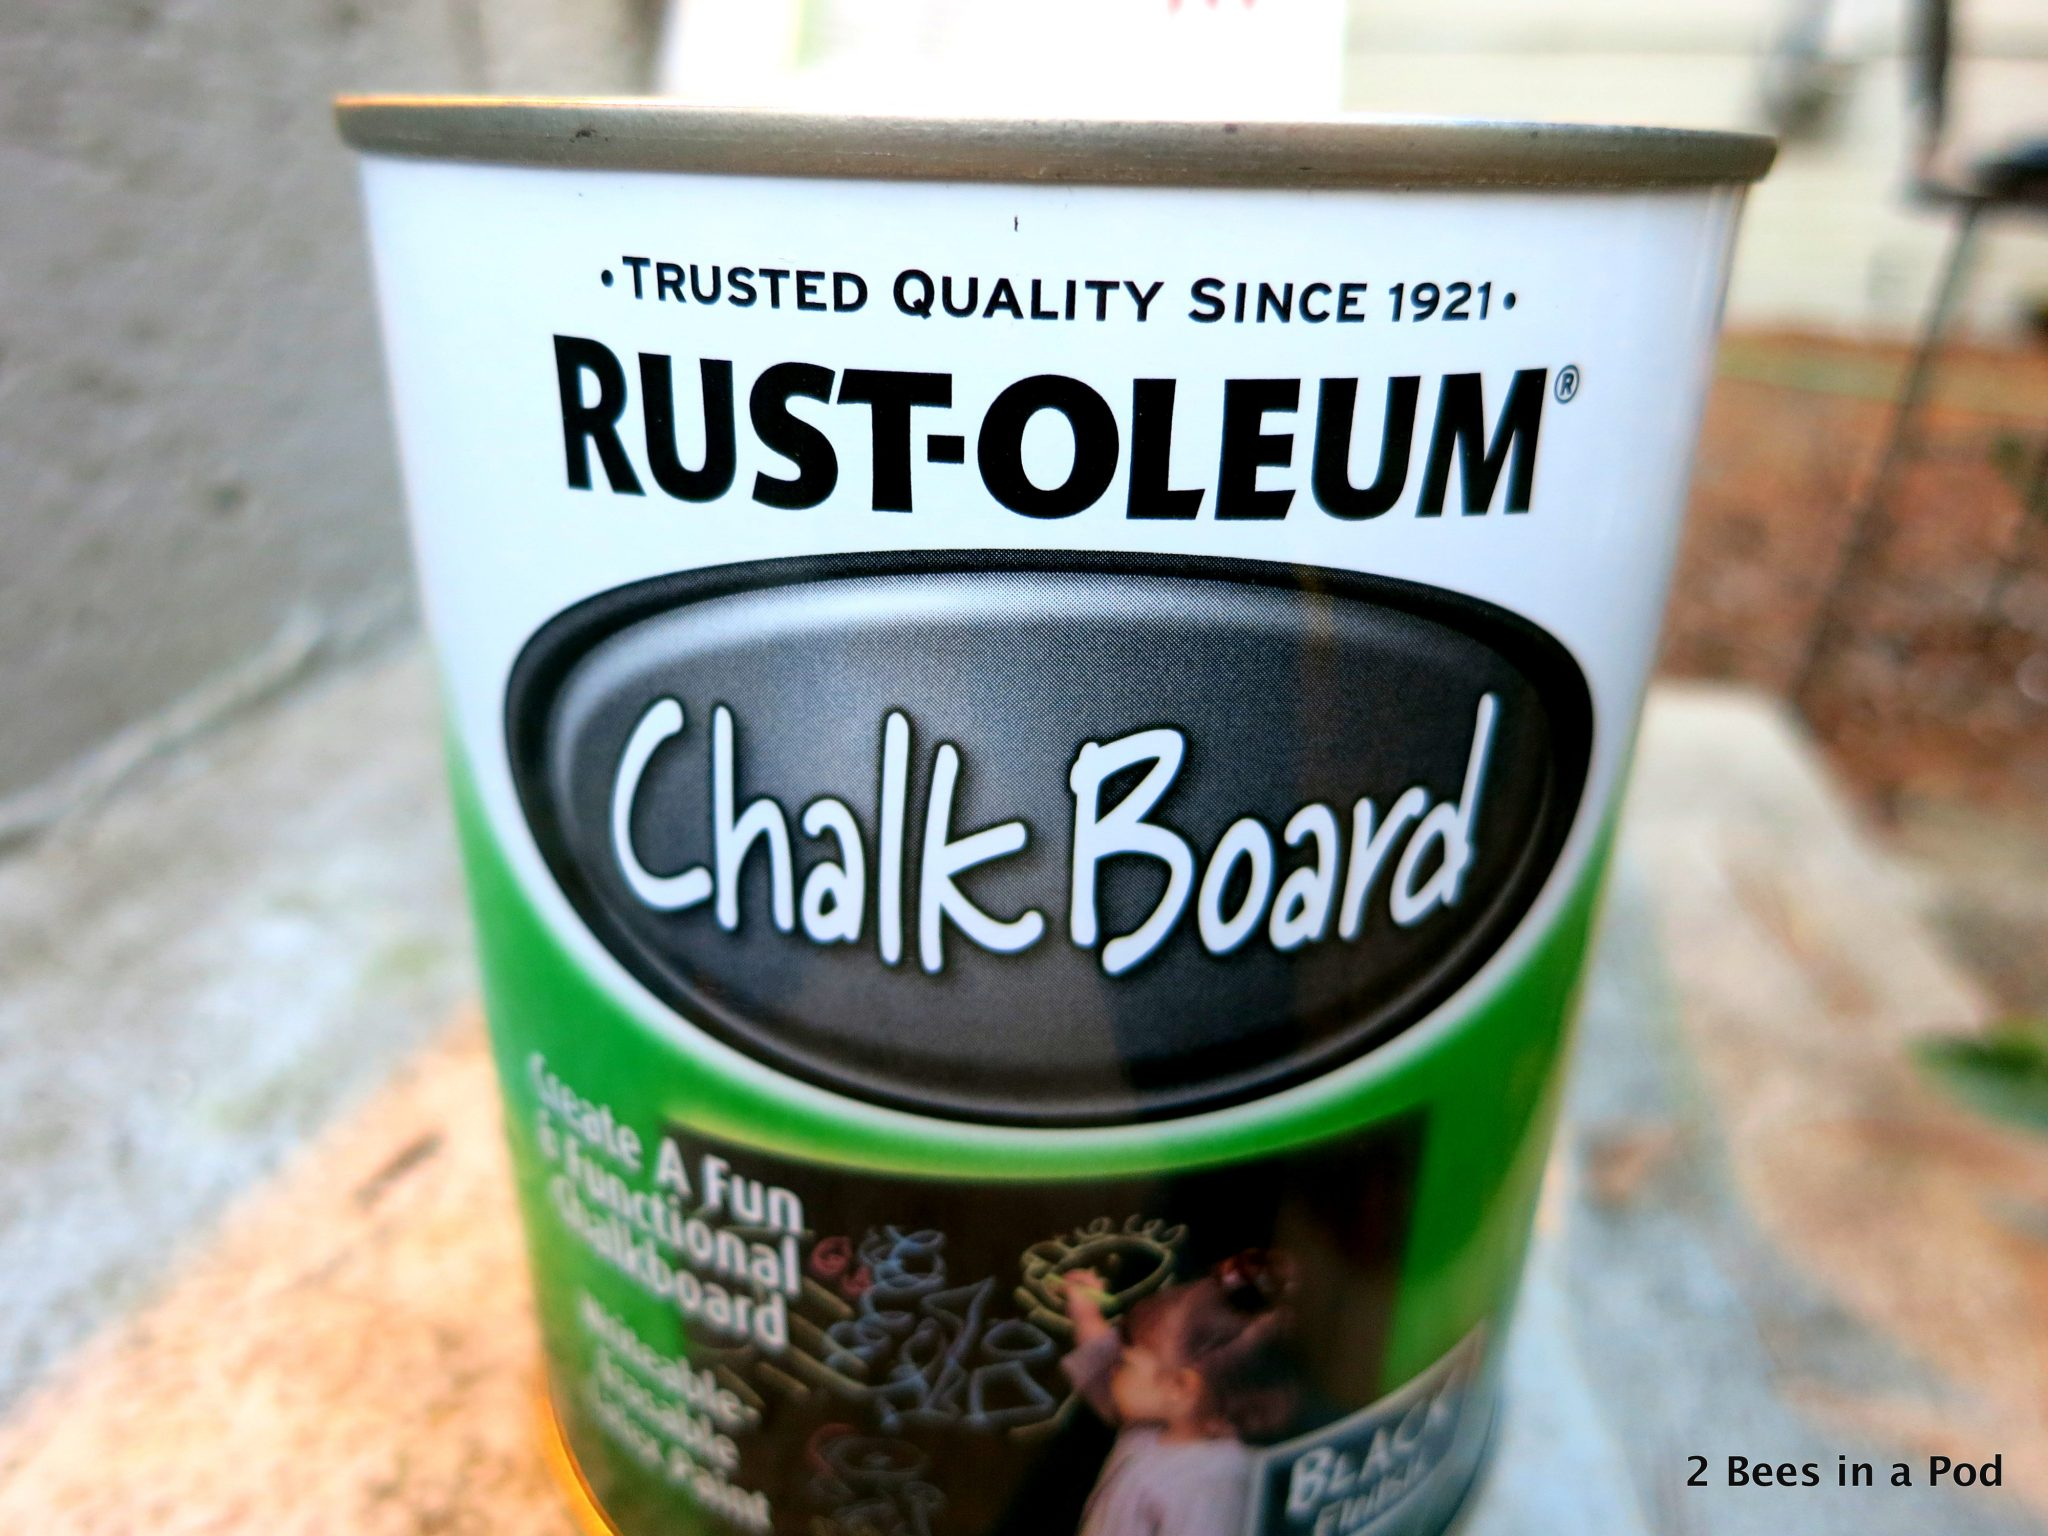 Rust-oleum chalk board paint